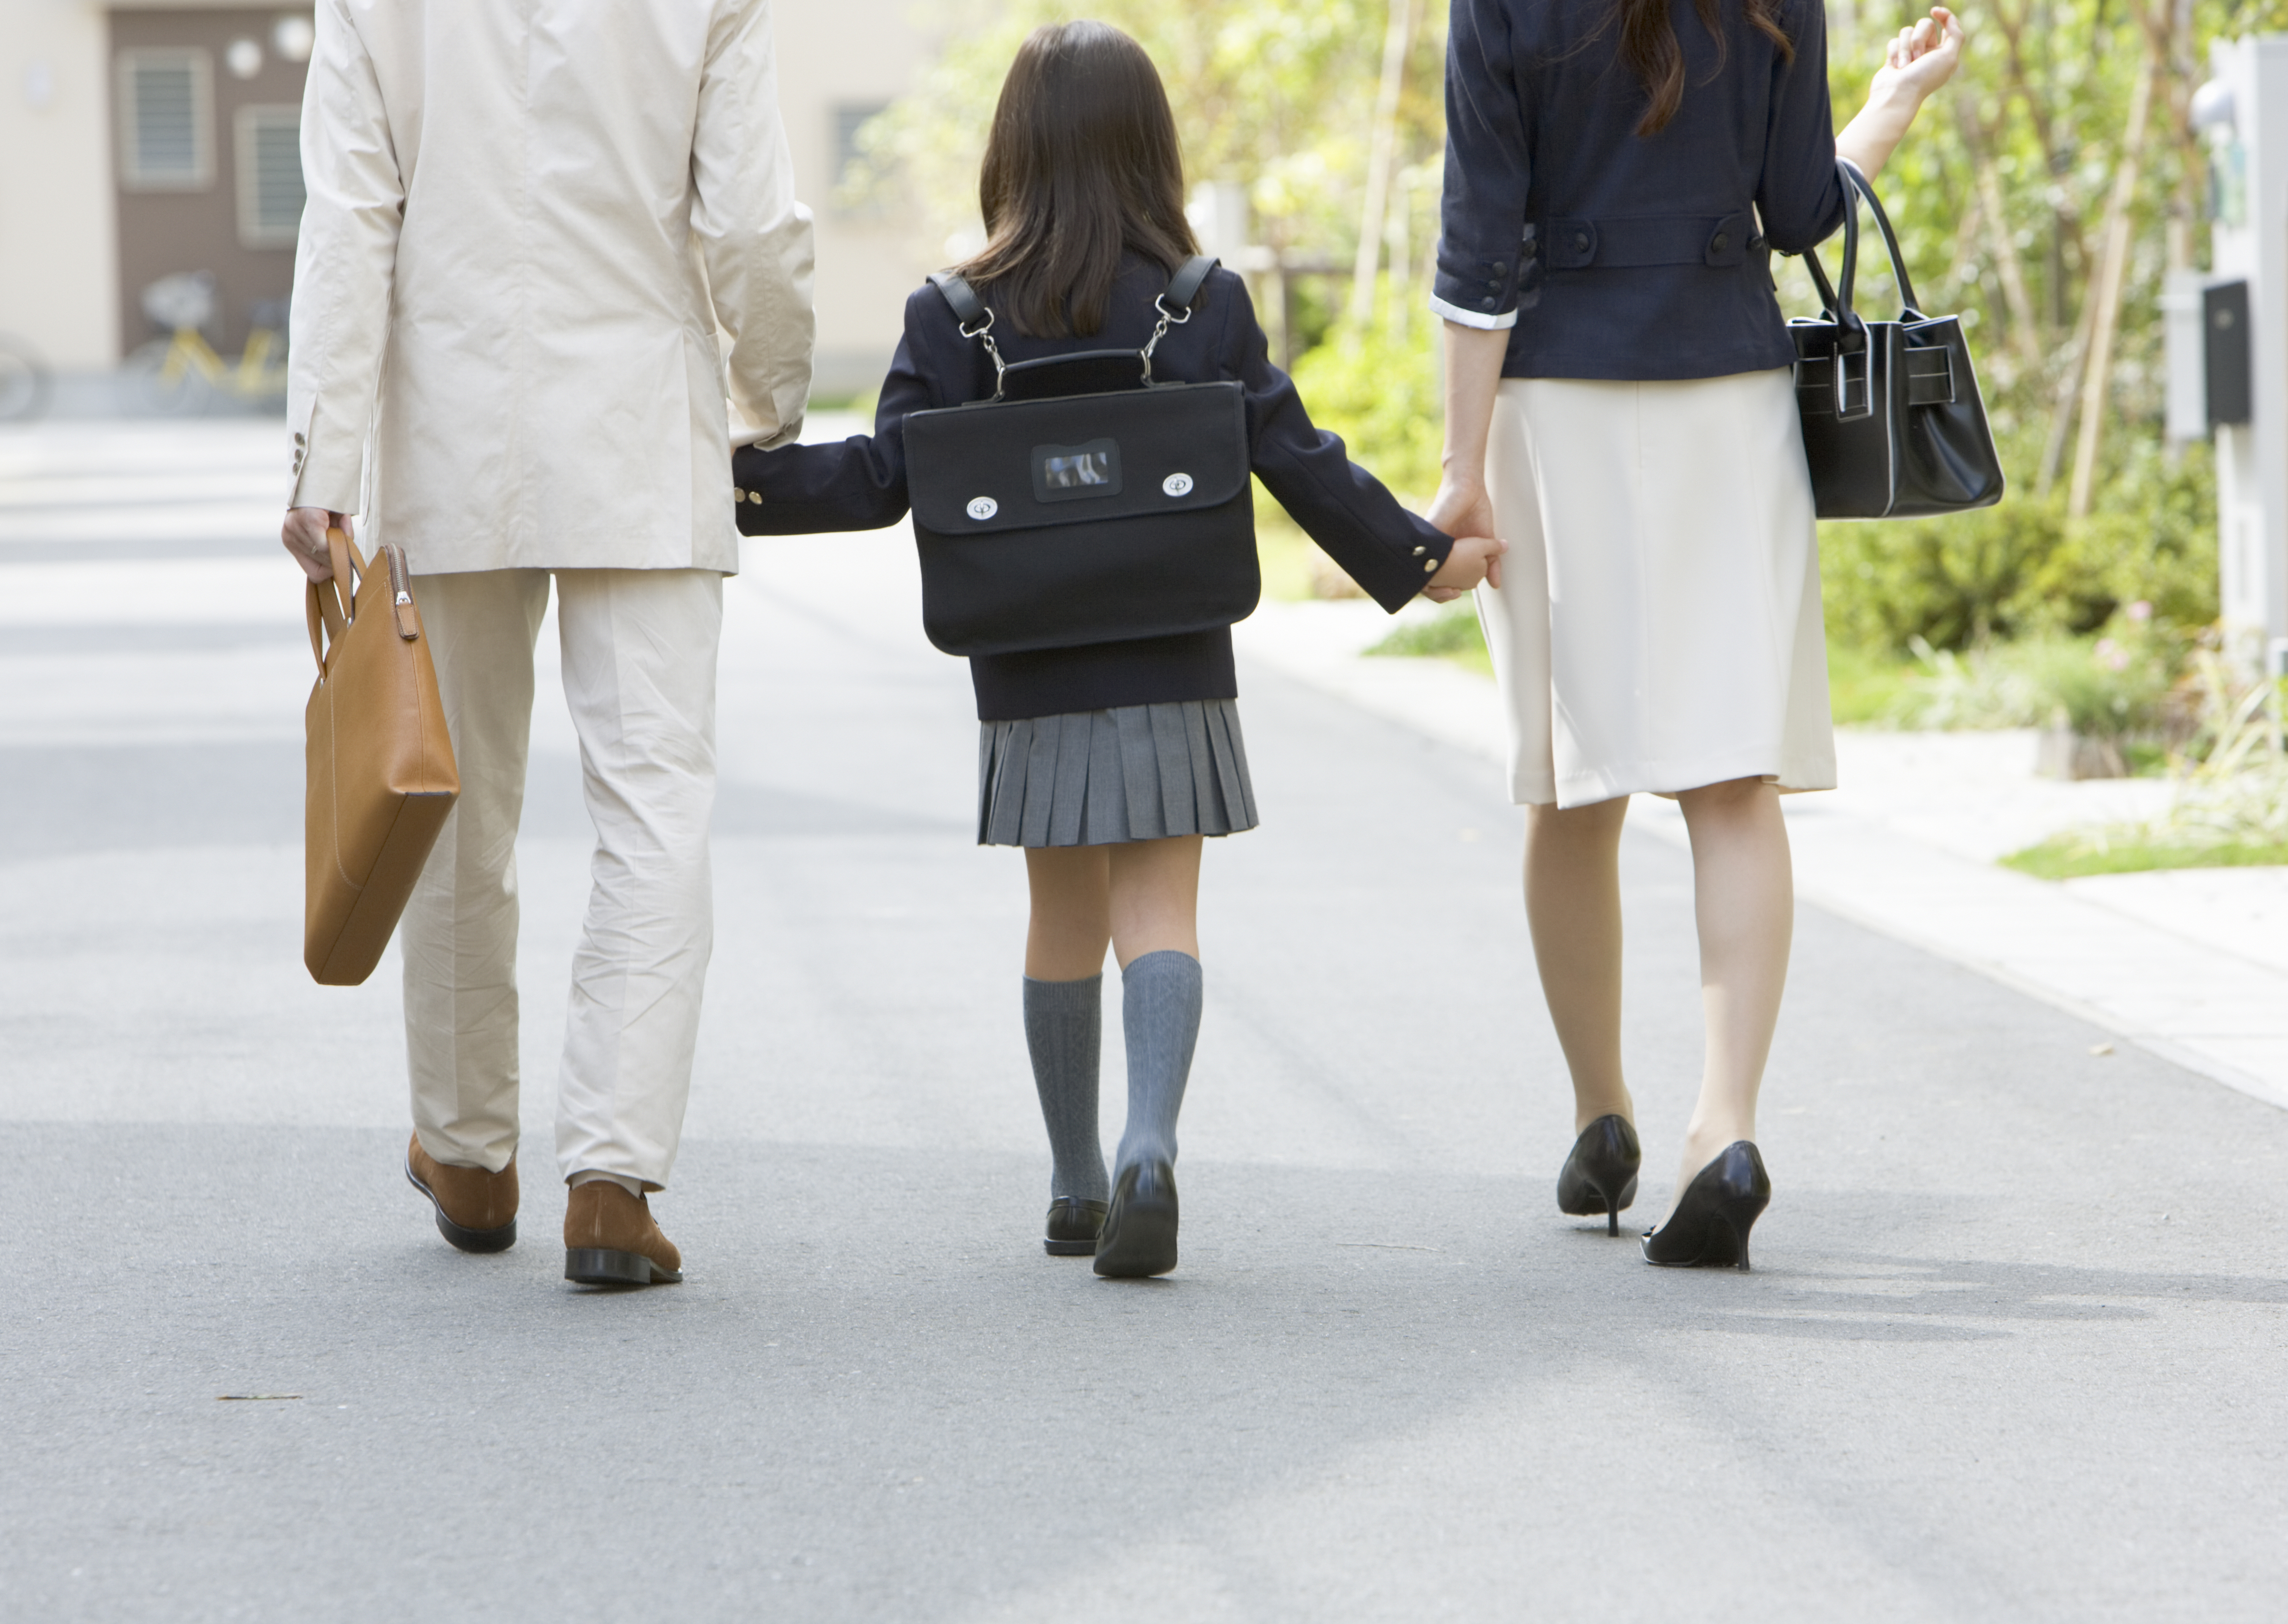 Family walking around the residential district